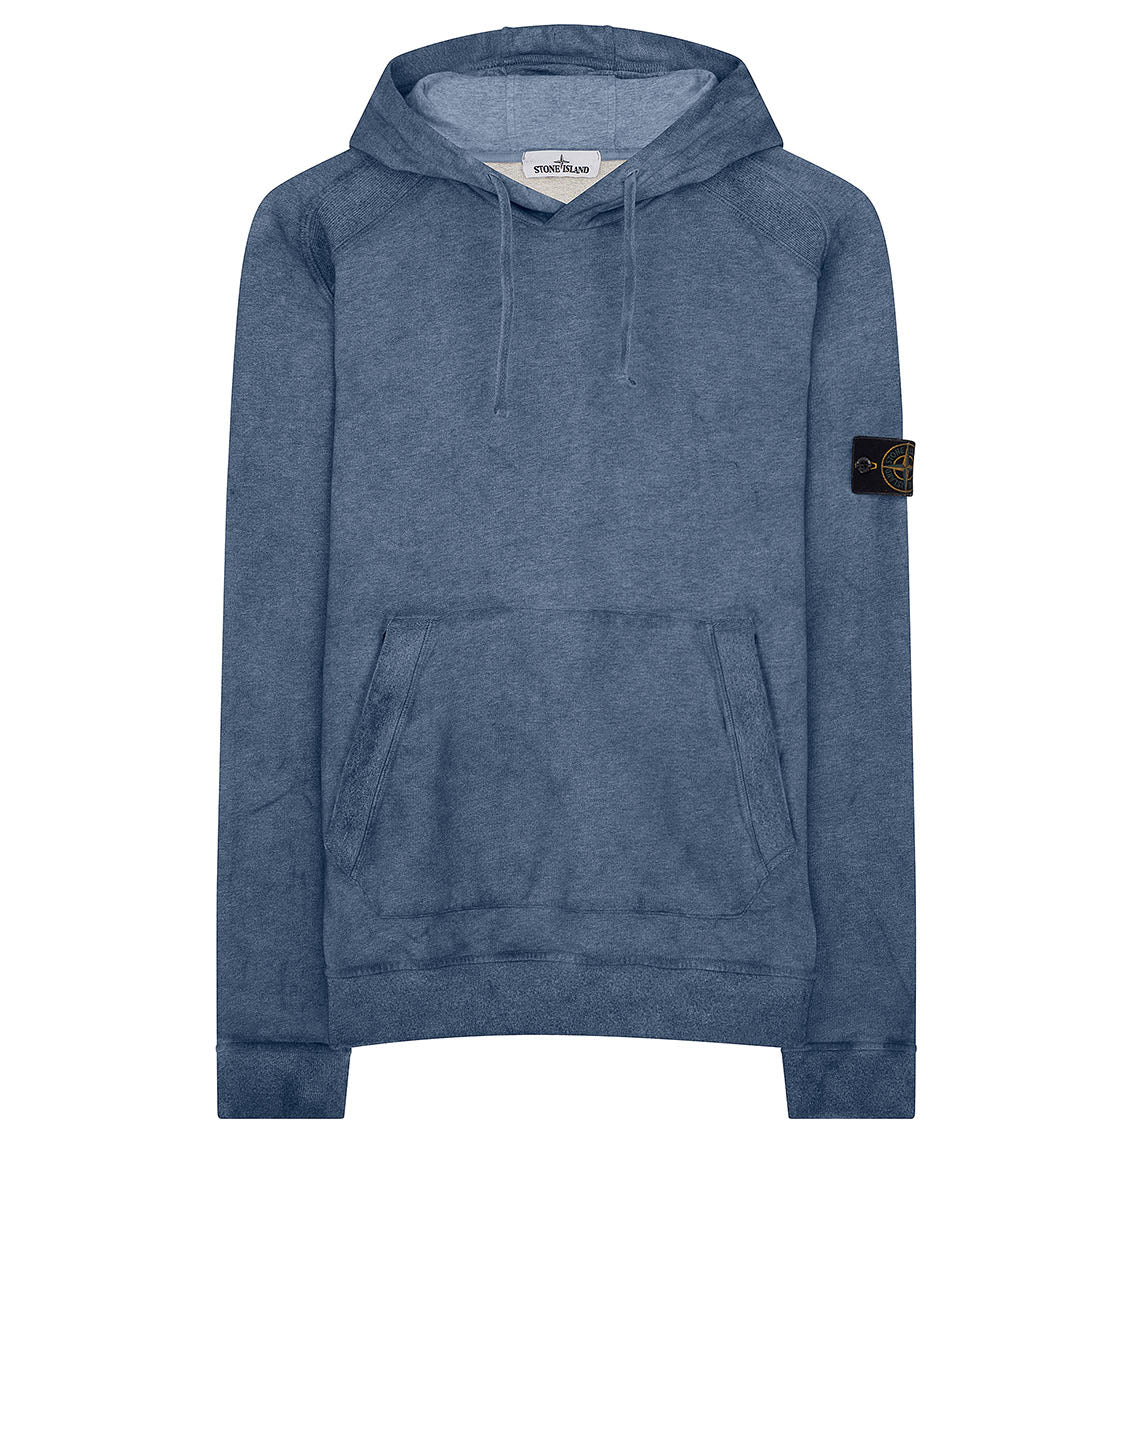 62090 Dust Colour Mélange Cotton Fleece Hooded Sweatshirt in Periwinkle